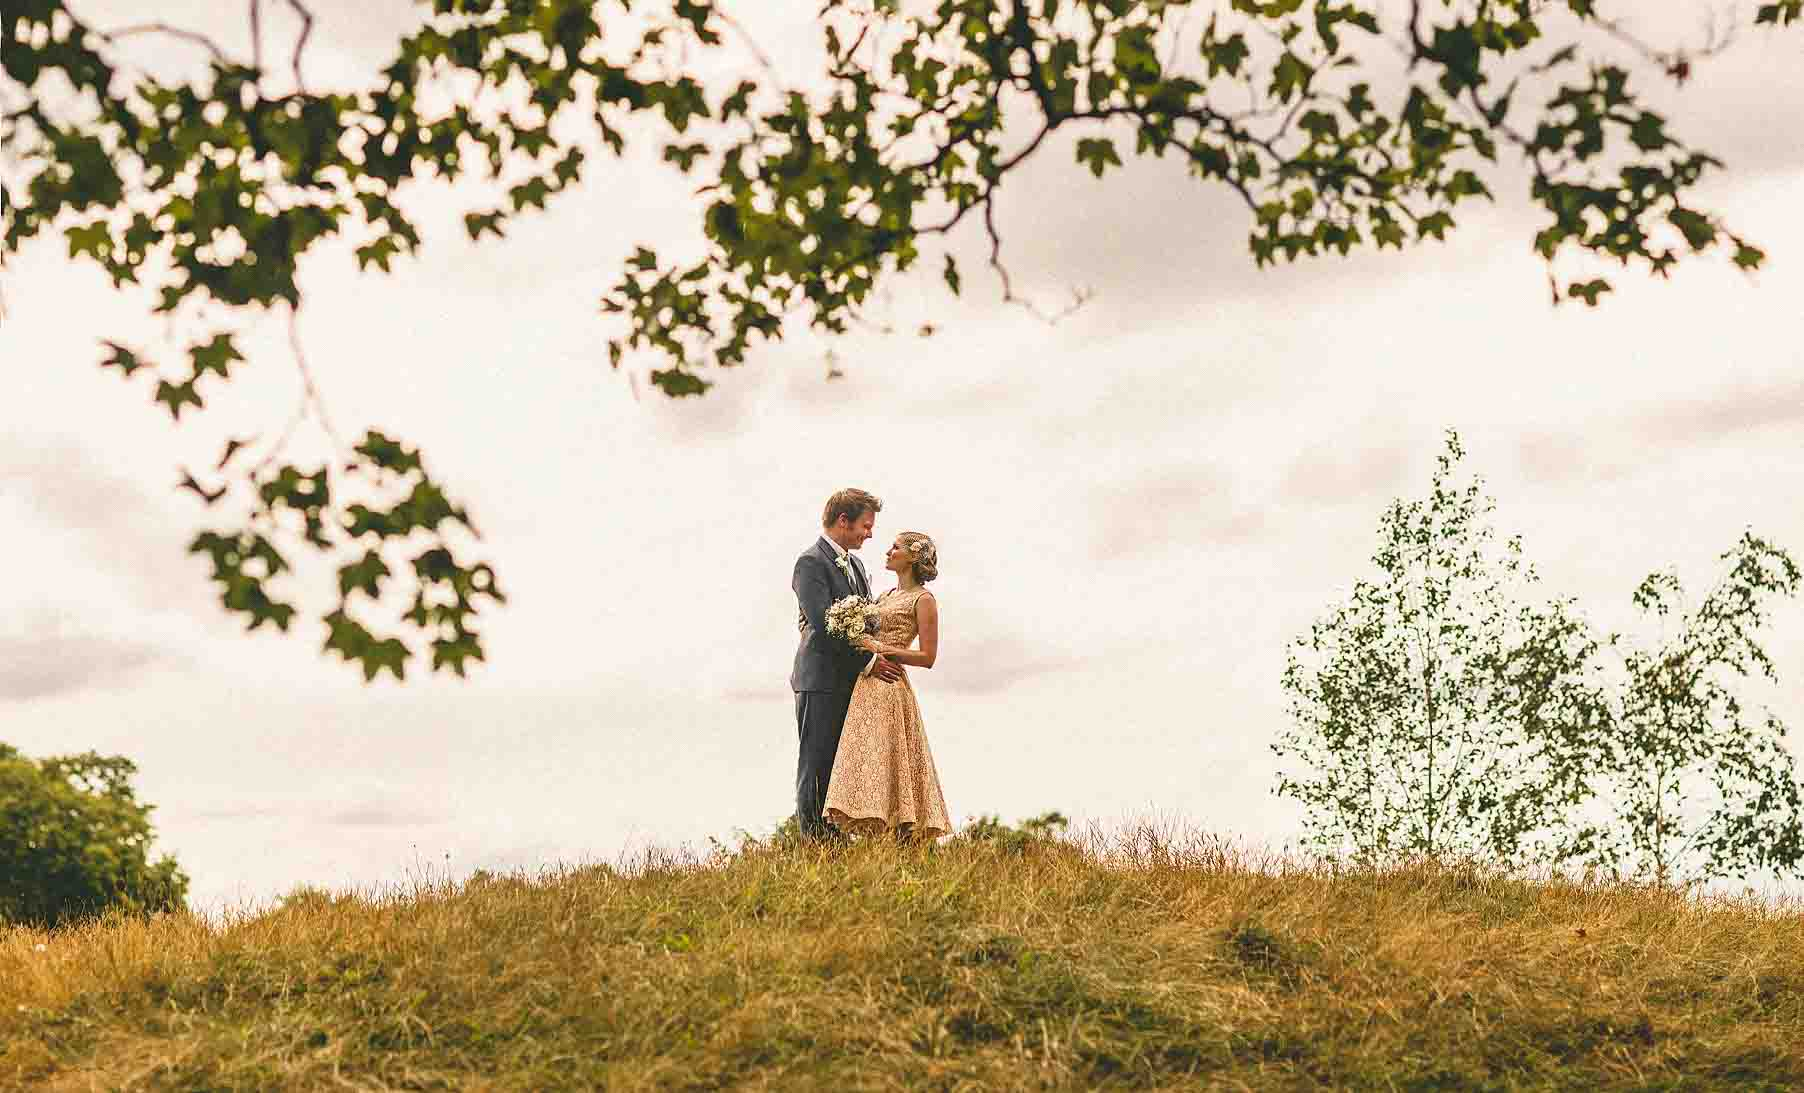 The-Peasant-Clerkenwell-London-Wedding-Photos-22